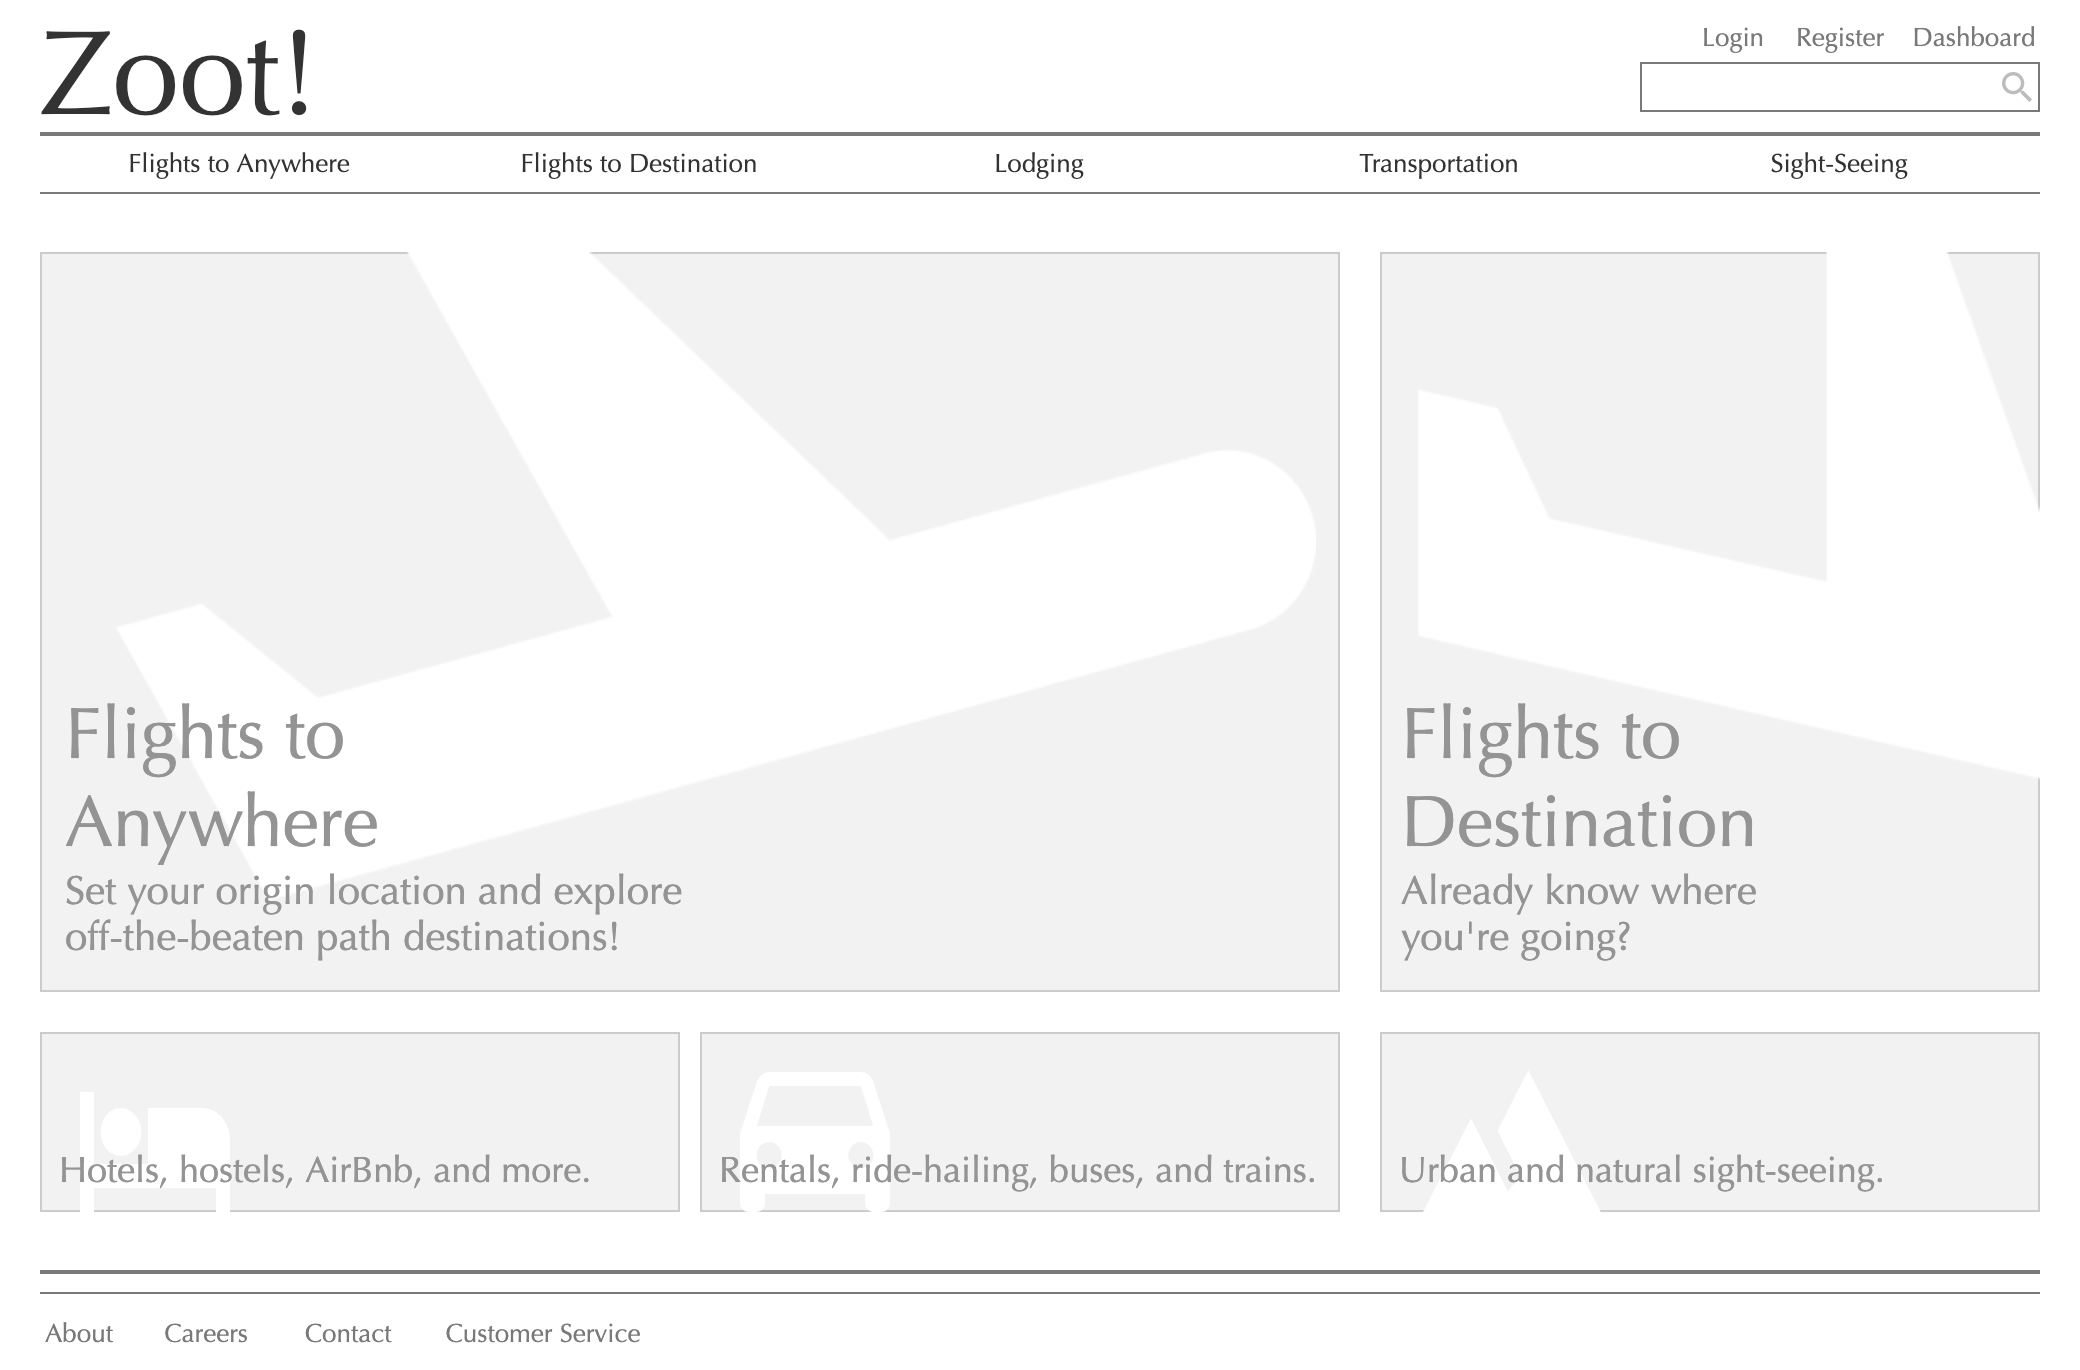 "refining content - At this stage of the design process, placeholder content was replaced with text and simple imagery that influenced the mental model of the website. For example ""Explore"" got replaced with specific text, like ""Flights to Anywhere"", to note exactly what the user was to expect from this section."